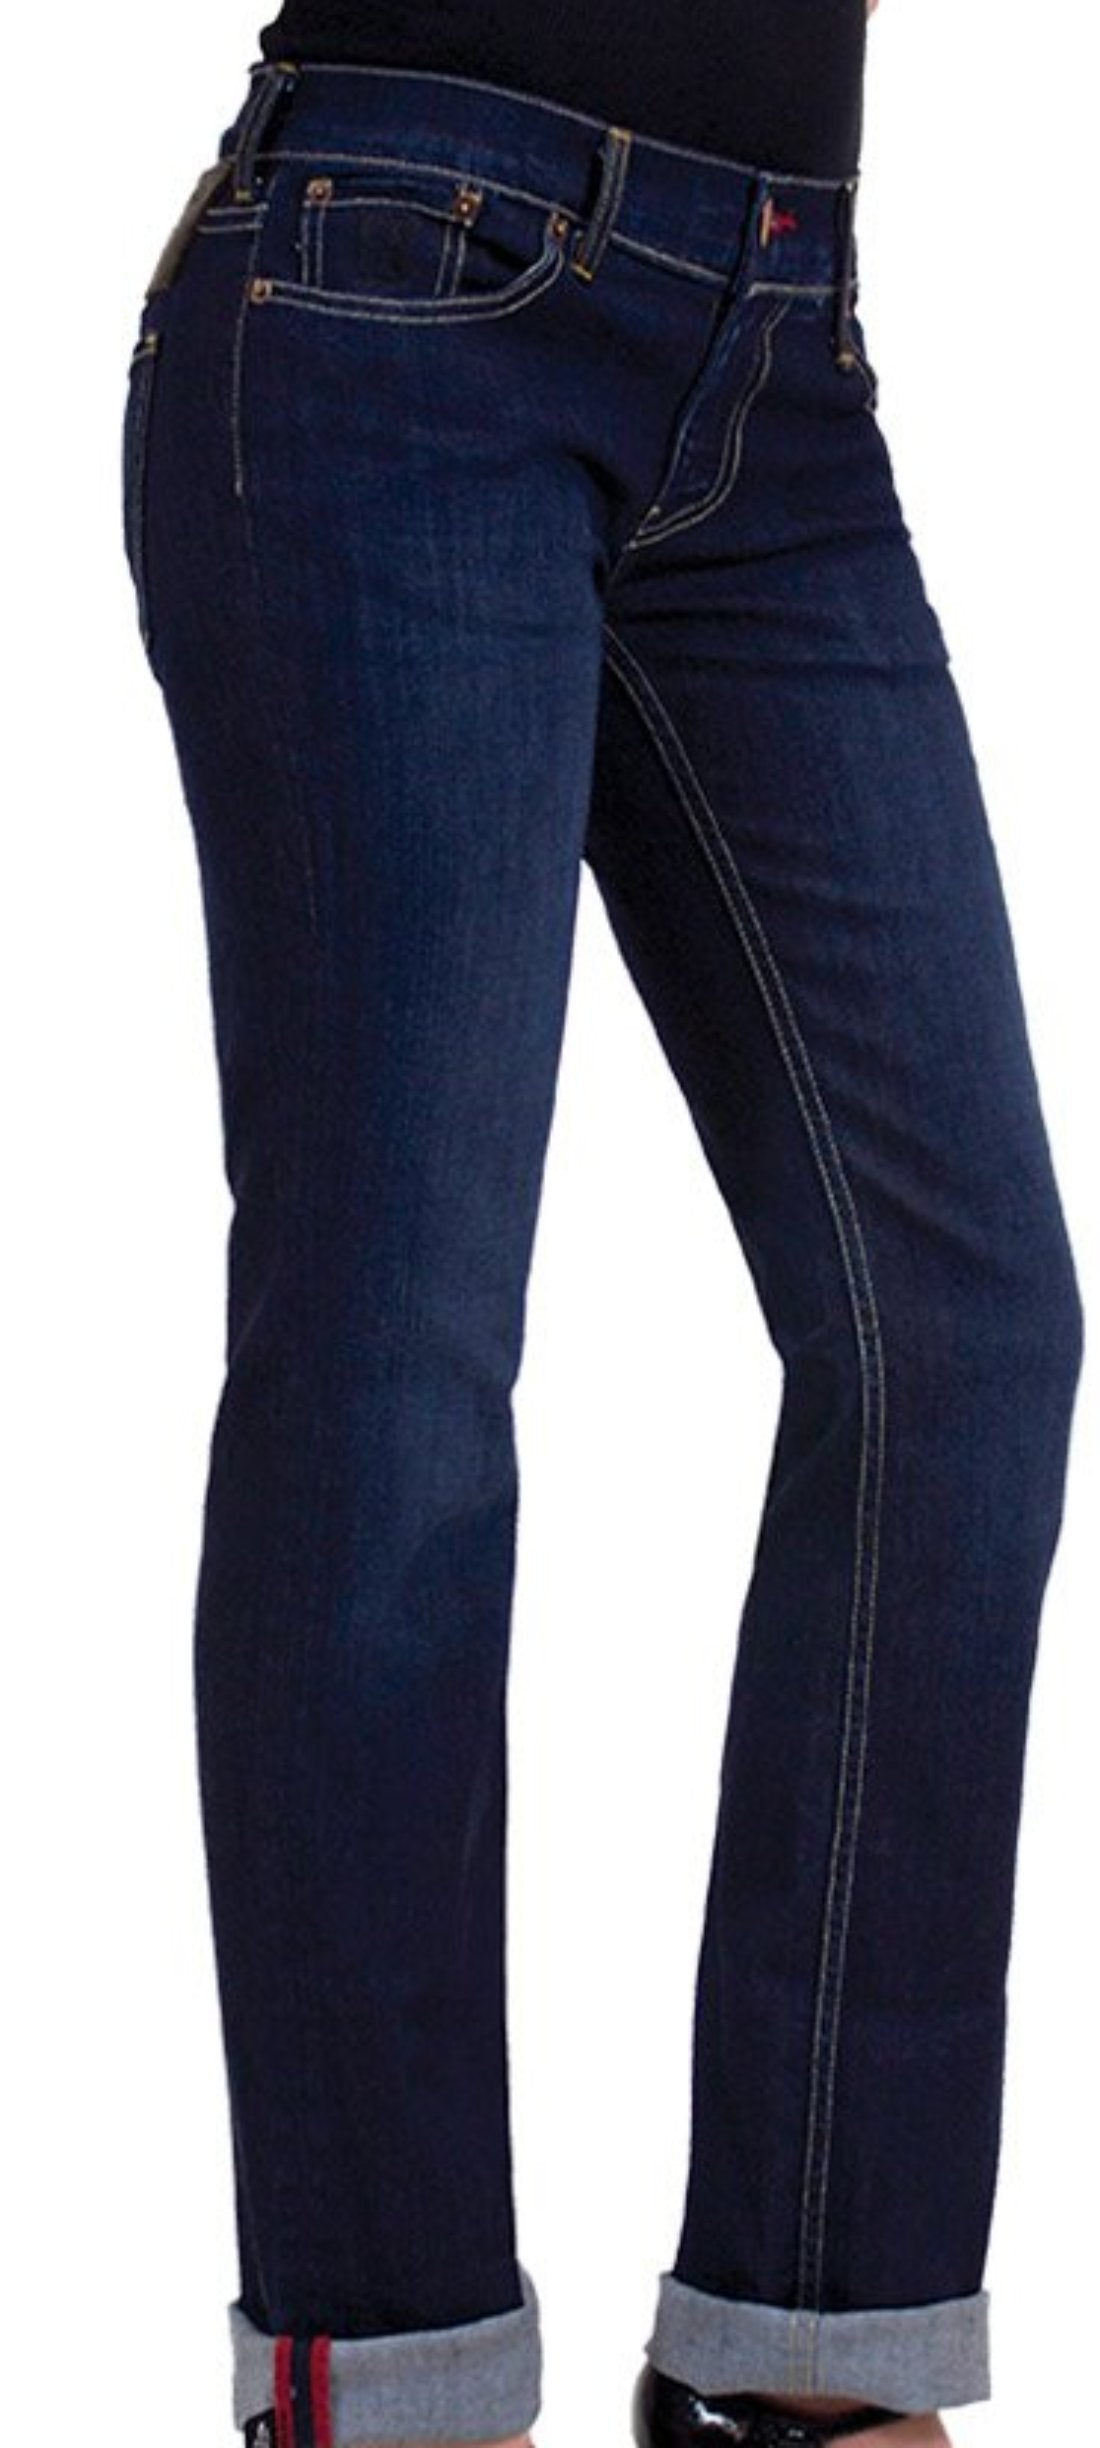 The LIGHT ROCK Women's Denim Jeans - SIZES 23-28 ONLY!